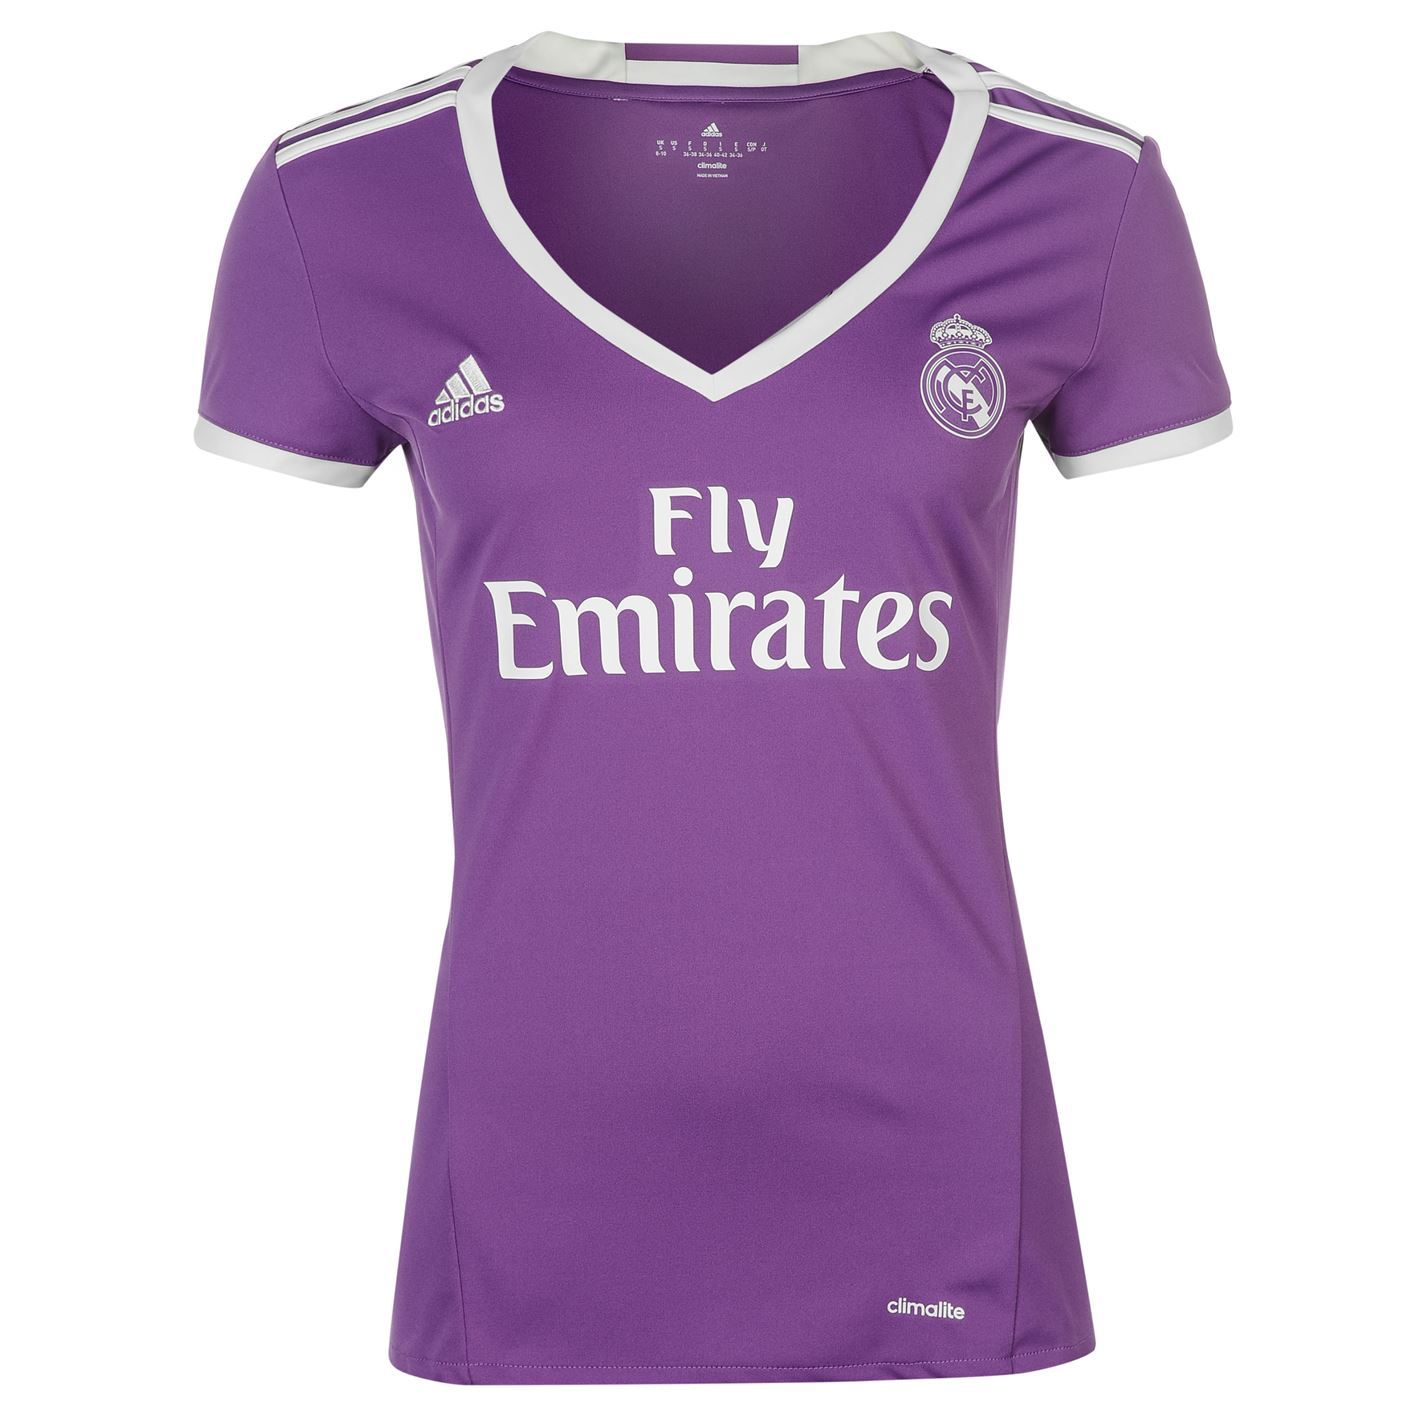 adidas Real Madrid Away Jersey 2016-17 Womens Purple White Football Soccer  Shirt 2d4f65635